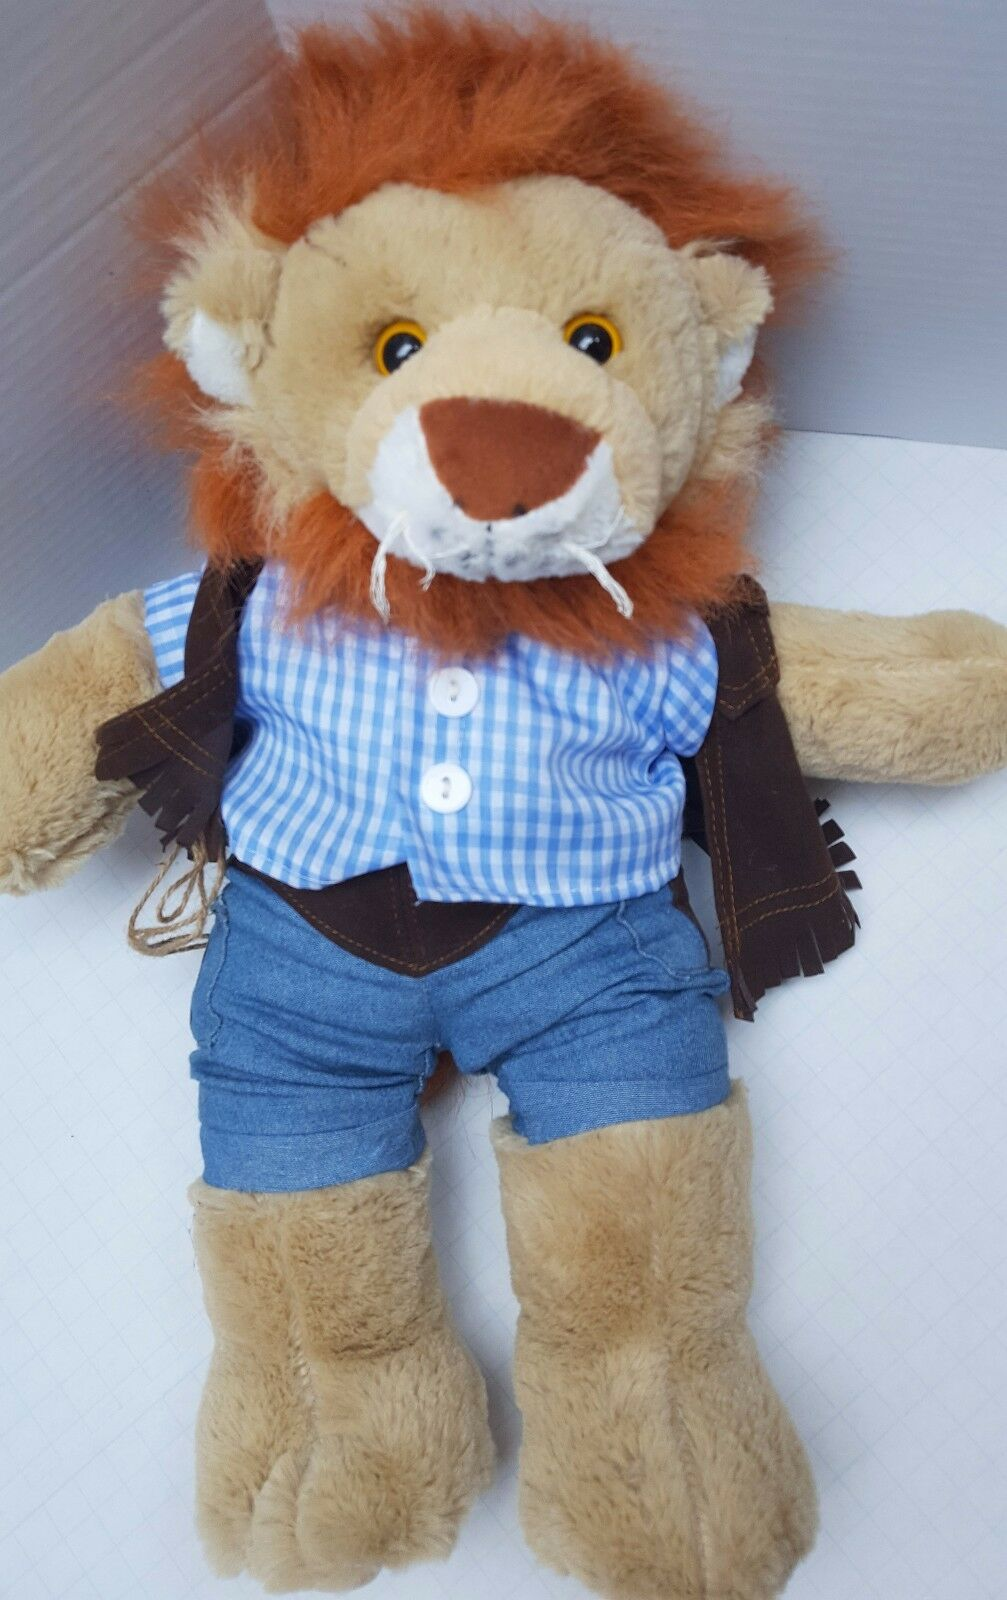 Teddy Mountain Lion Plush Doll Cowboy Western Orange Mame Rope Clothing UK 18